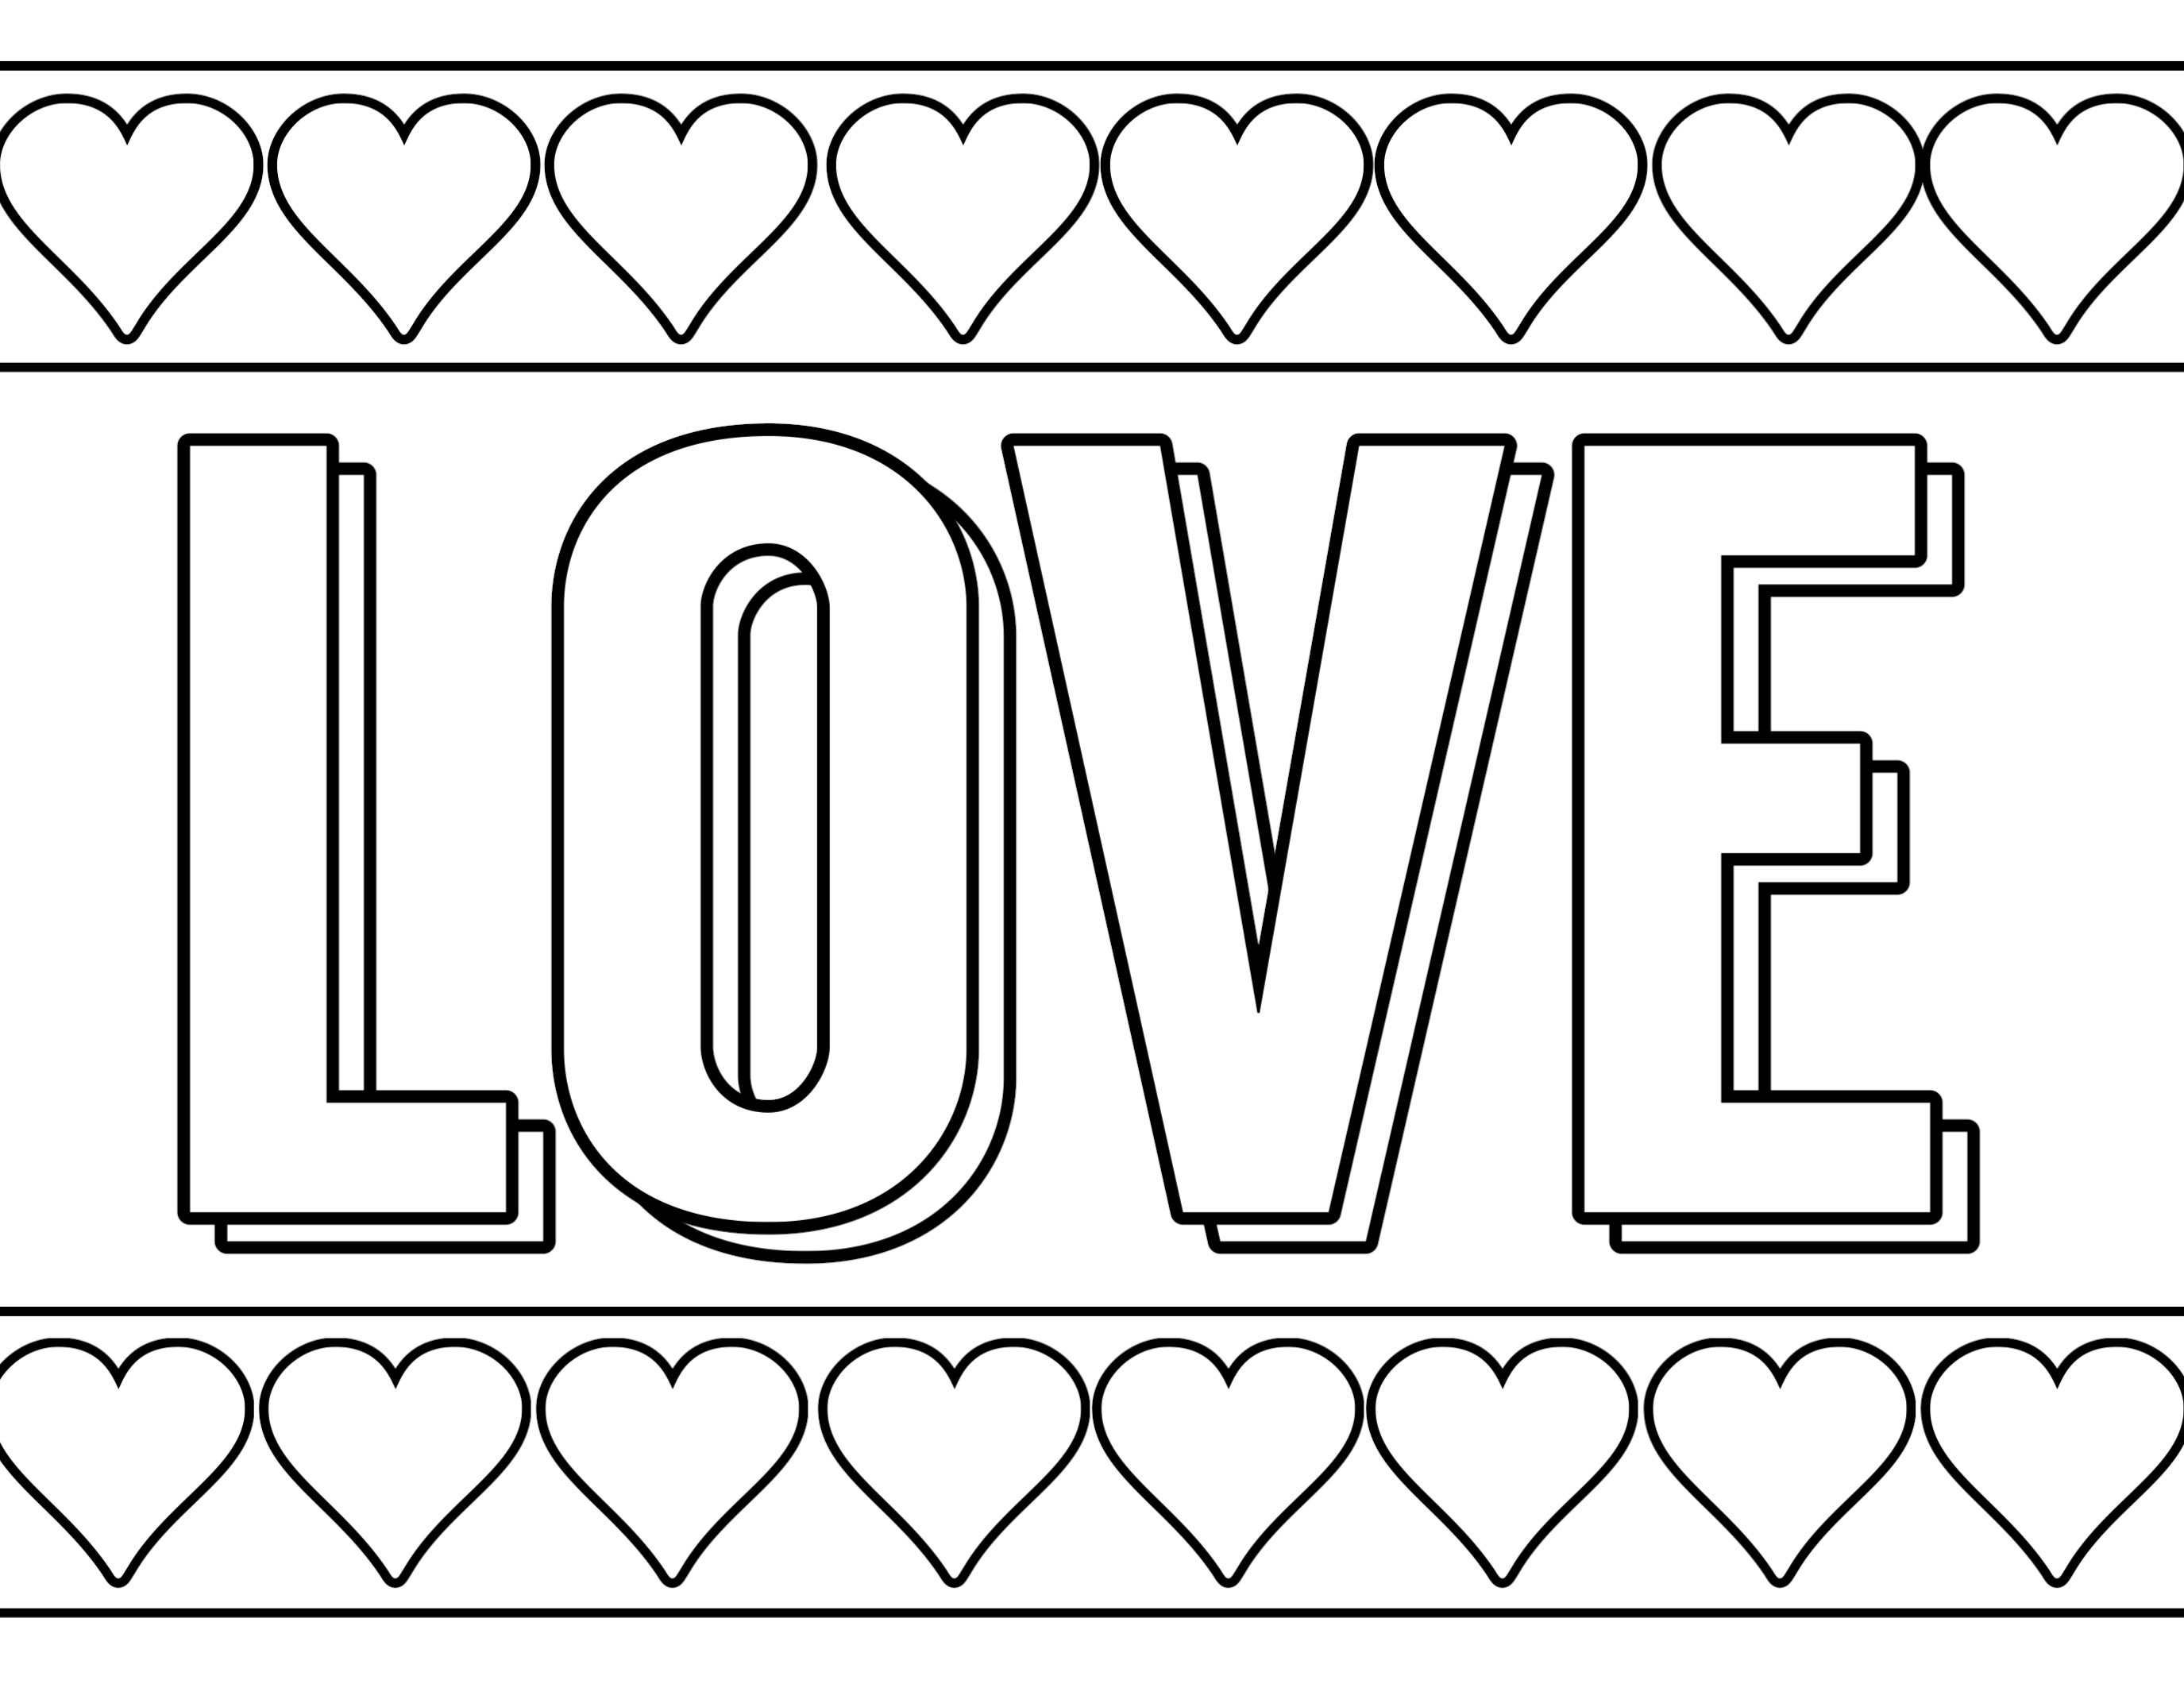 Free Printable Valentine Coloring Pages - Paper Trail Design - Free Printable Valentine Coloring Pages